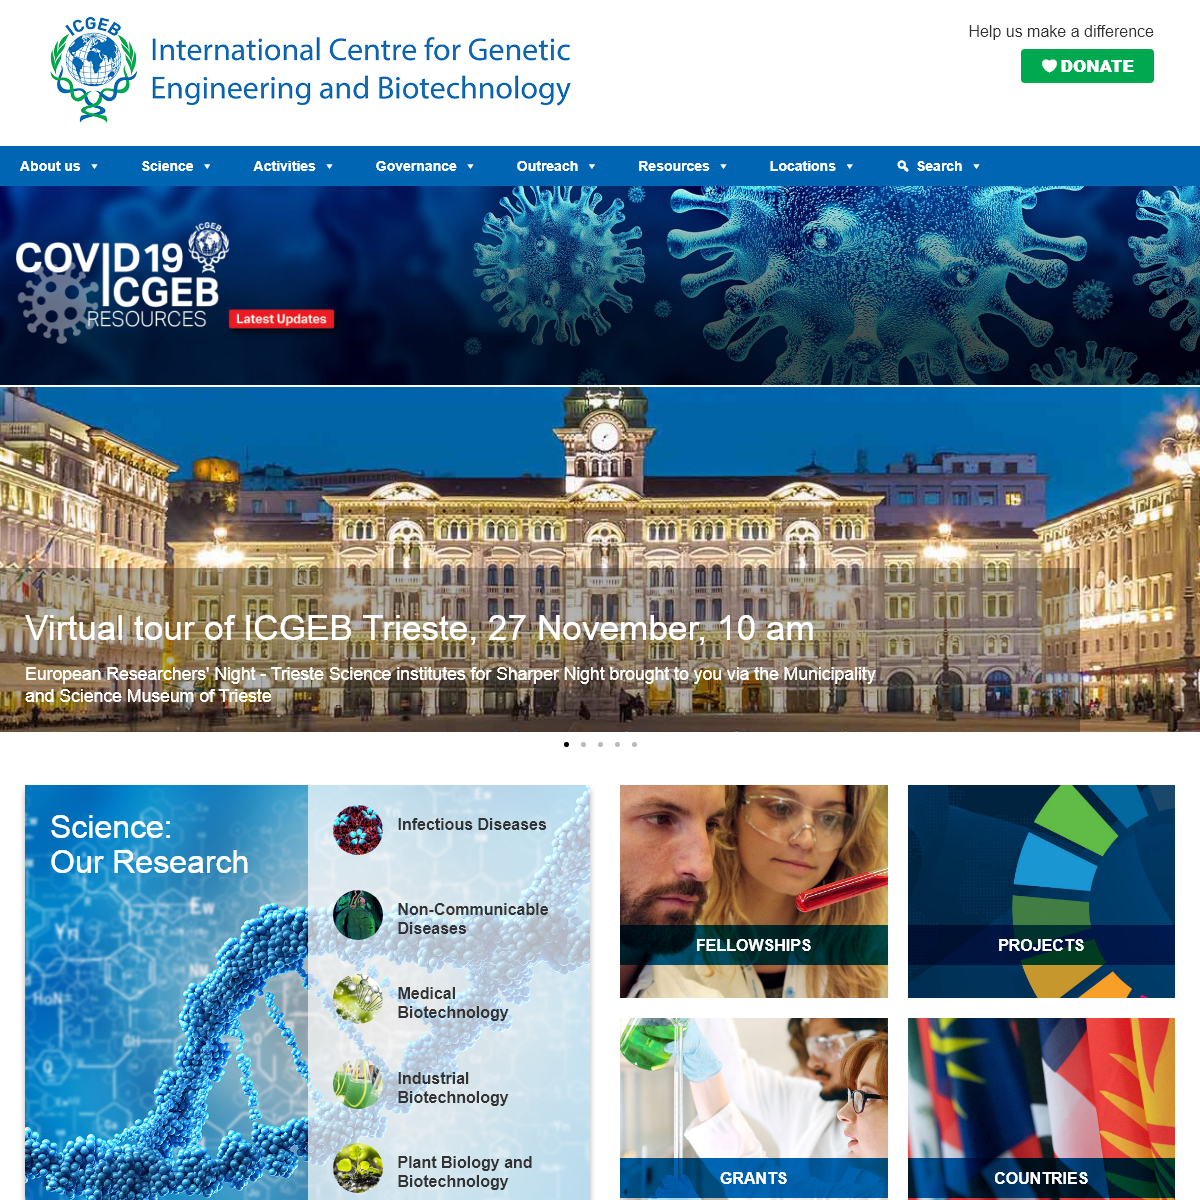 ICGEB International Centre for Genetic Engineering and Biotechnology